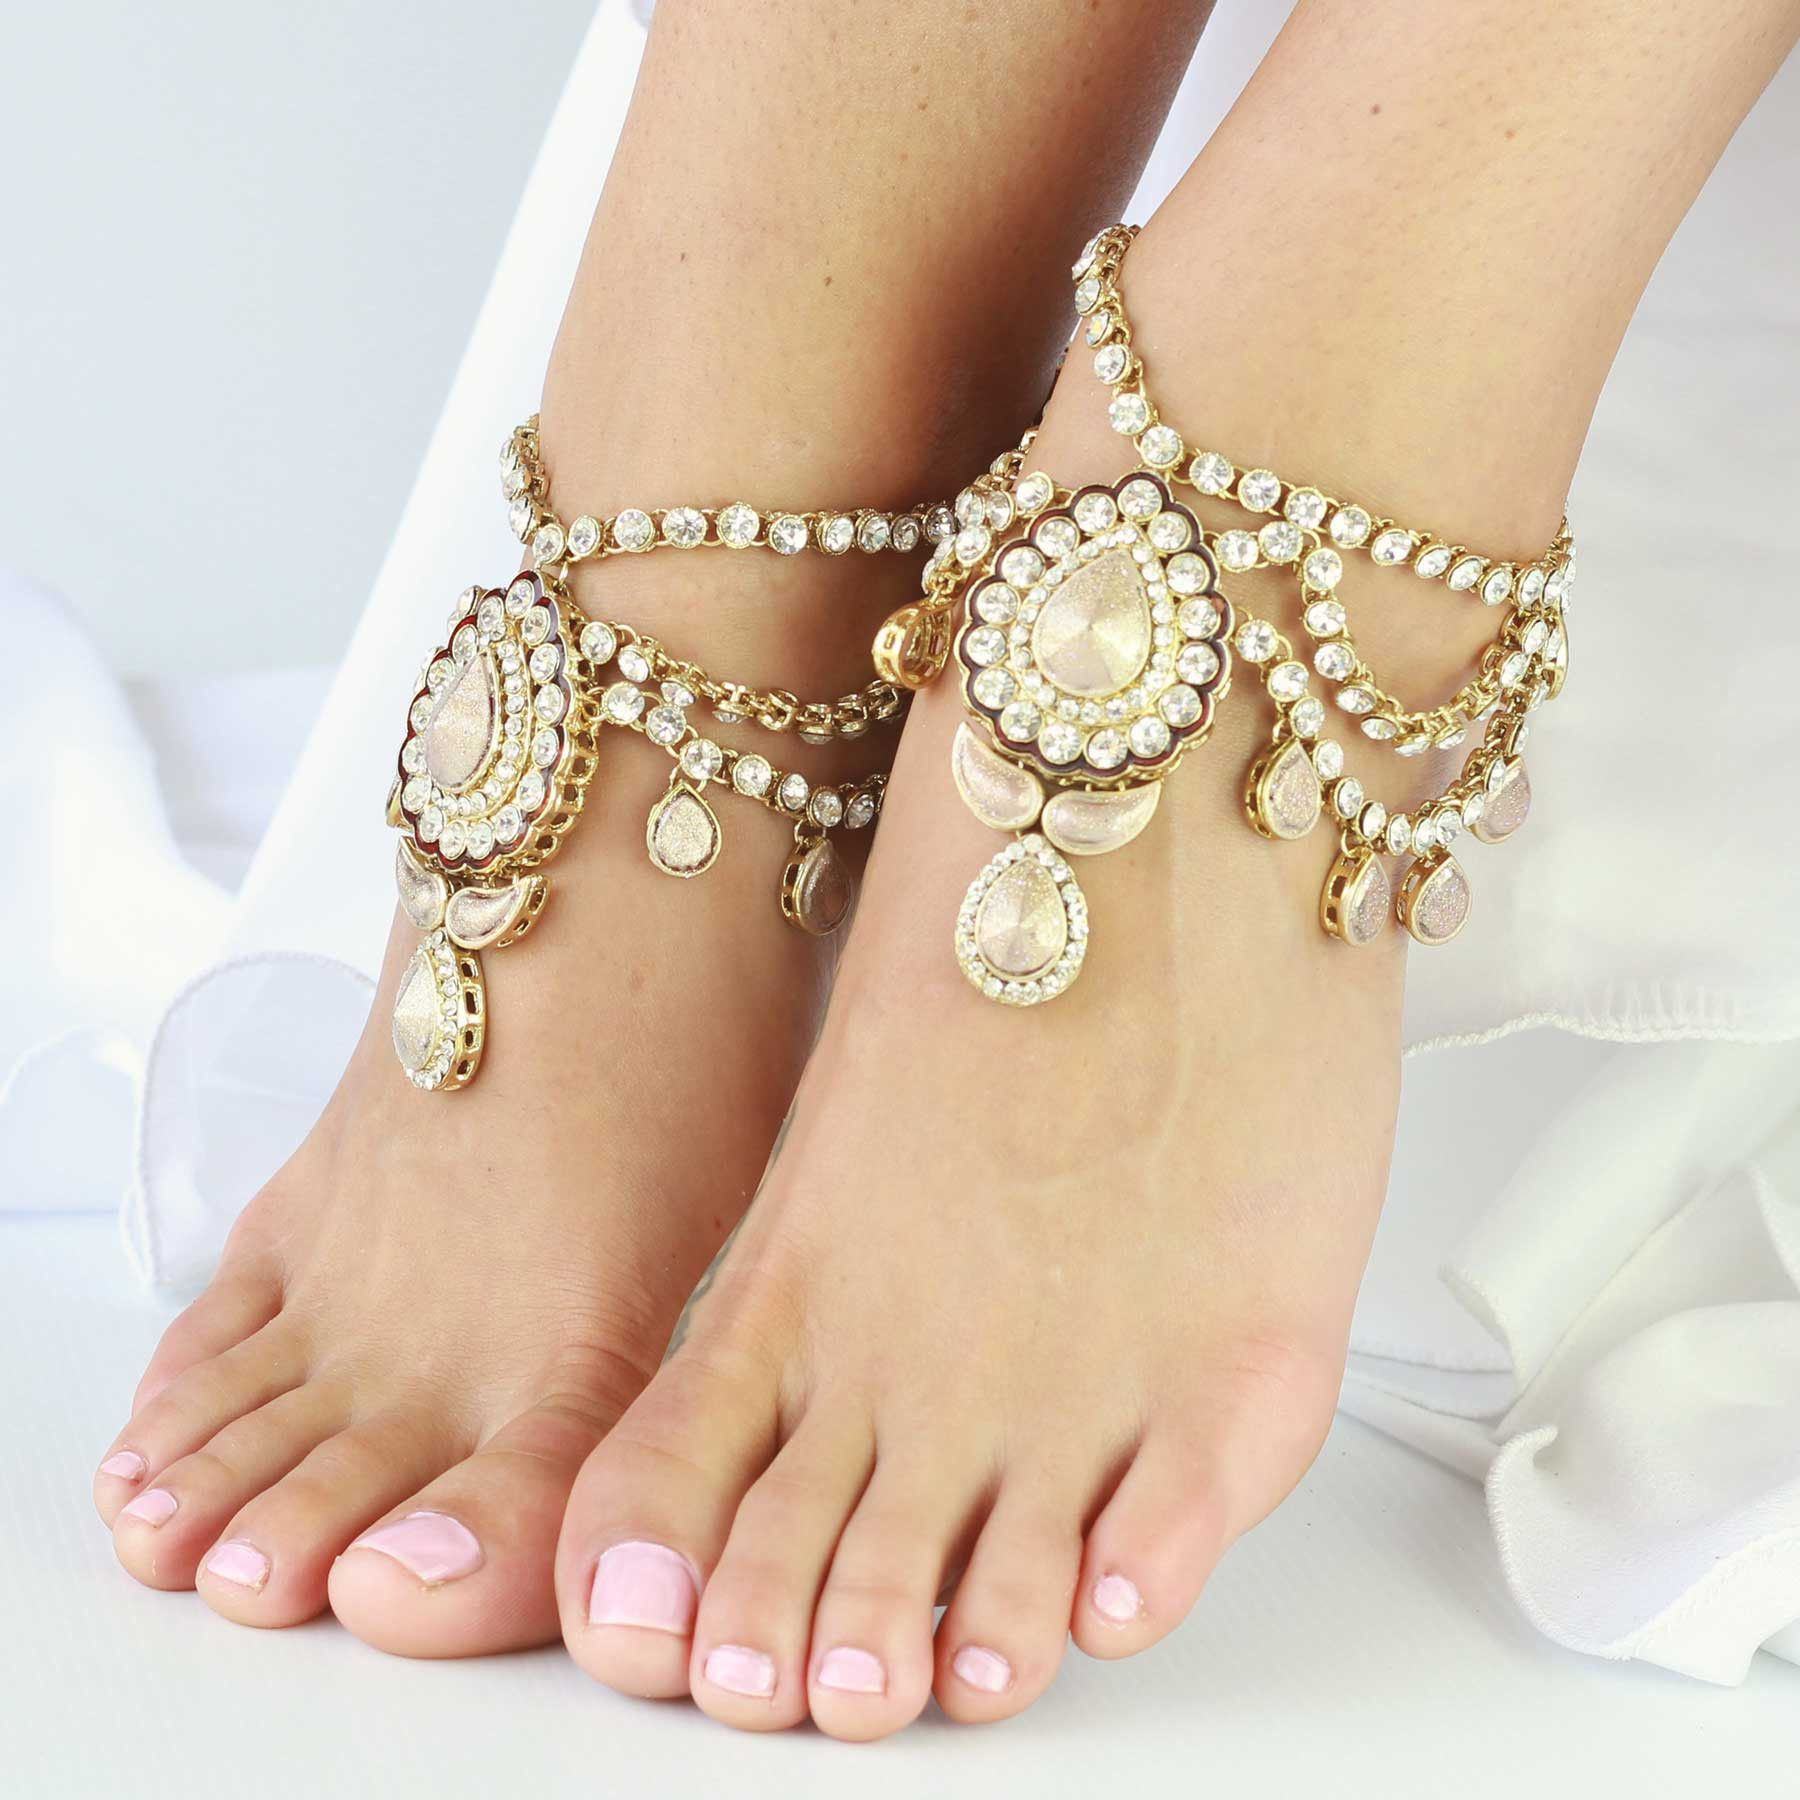 gold june bracelet anklet pin jewelry ankle birthstone dainty wedding delicate